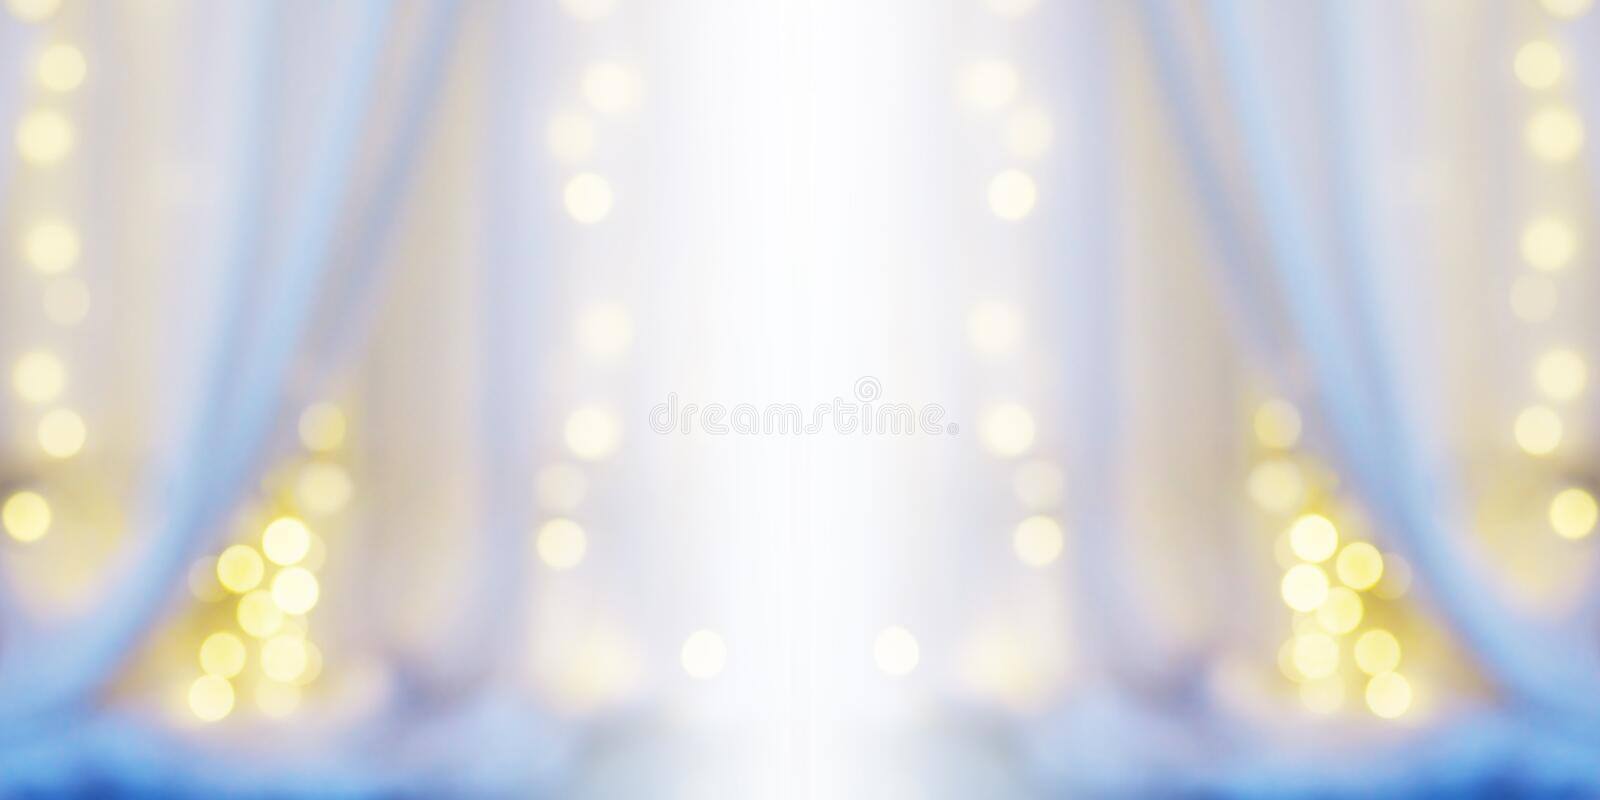 Fundo abstrato do borrão da cortina branca com bokeh da ampola fotografia de stock royalty free